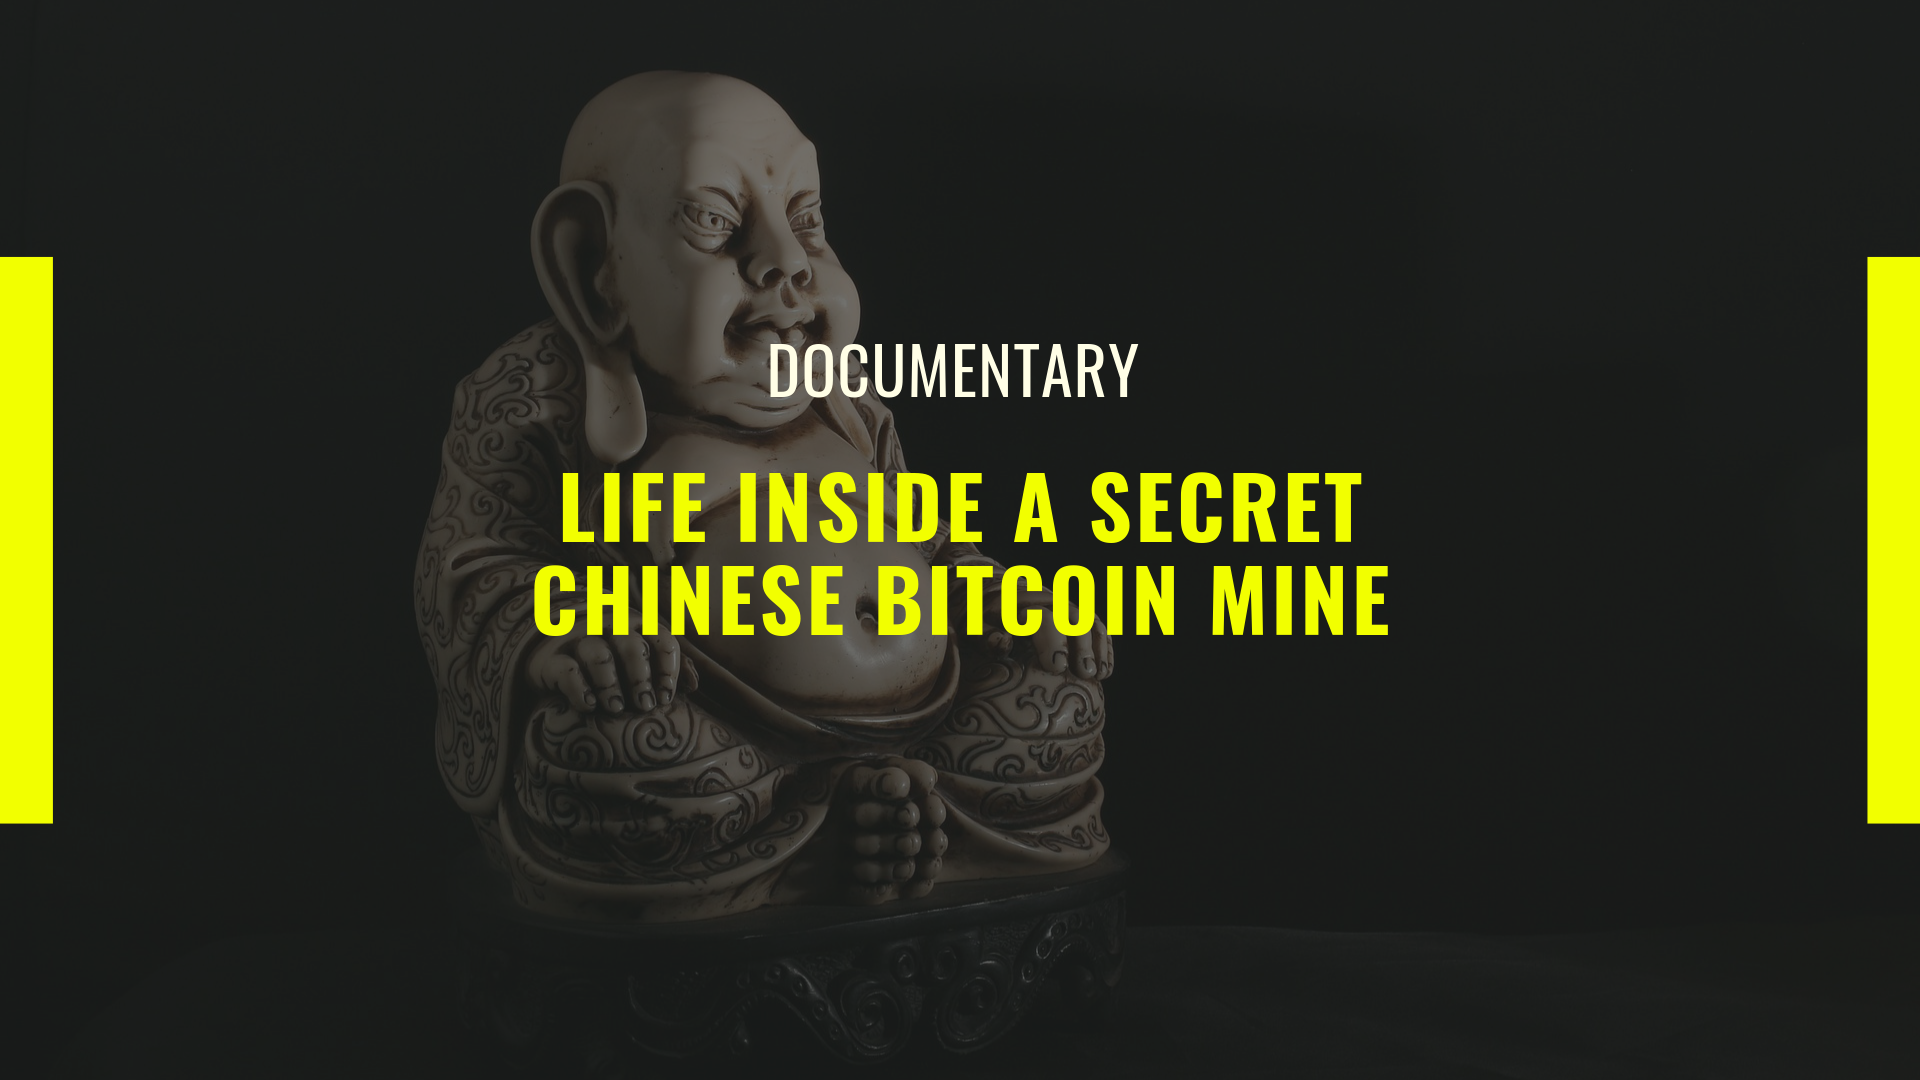 [Documentary] Life Inside a Secret Chinese Bitcoin Mine